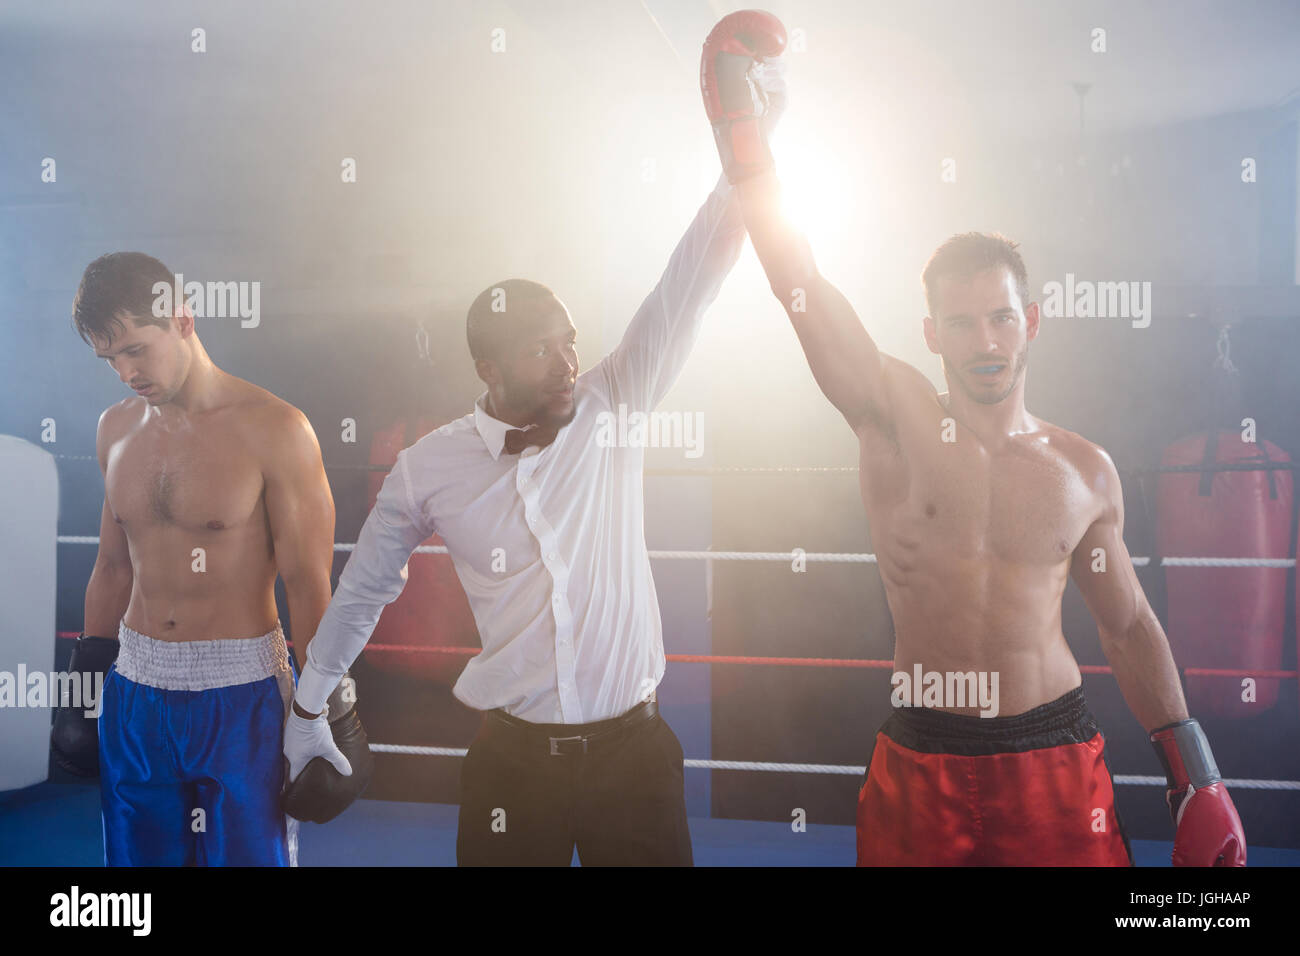 Referee lighting hand of winner standing with loser in boxing ring - Stock Image